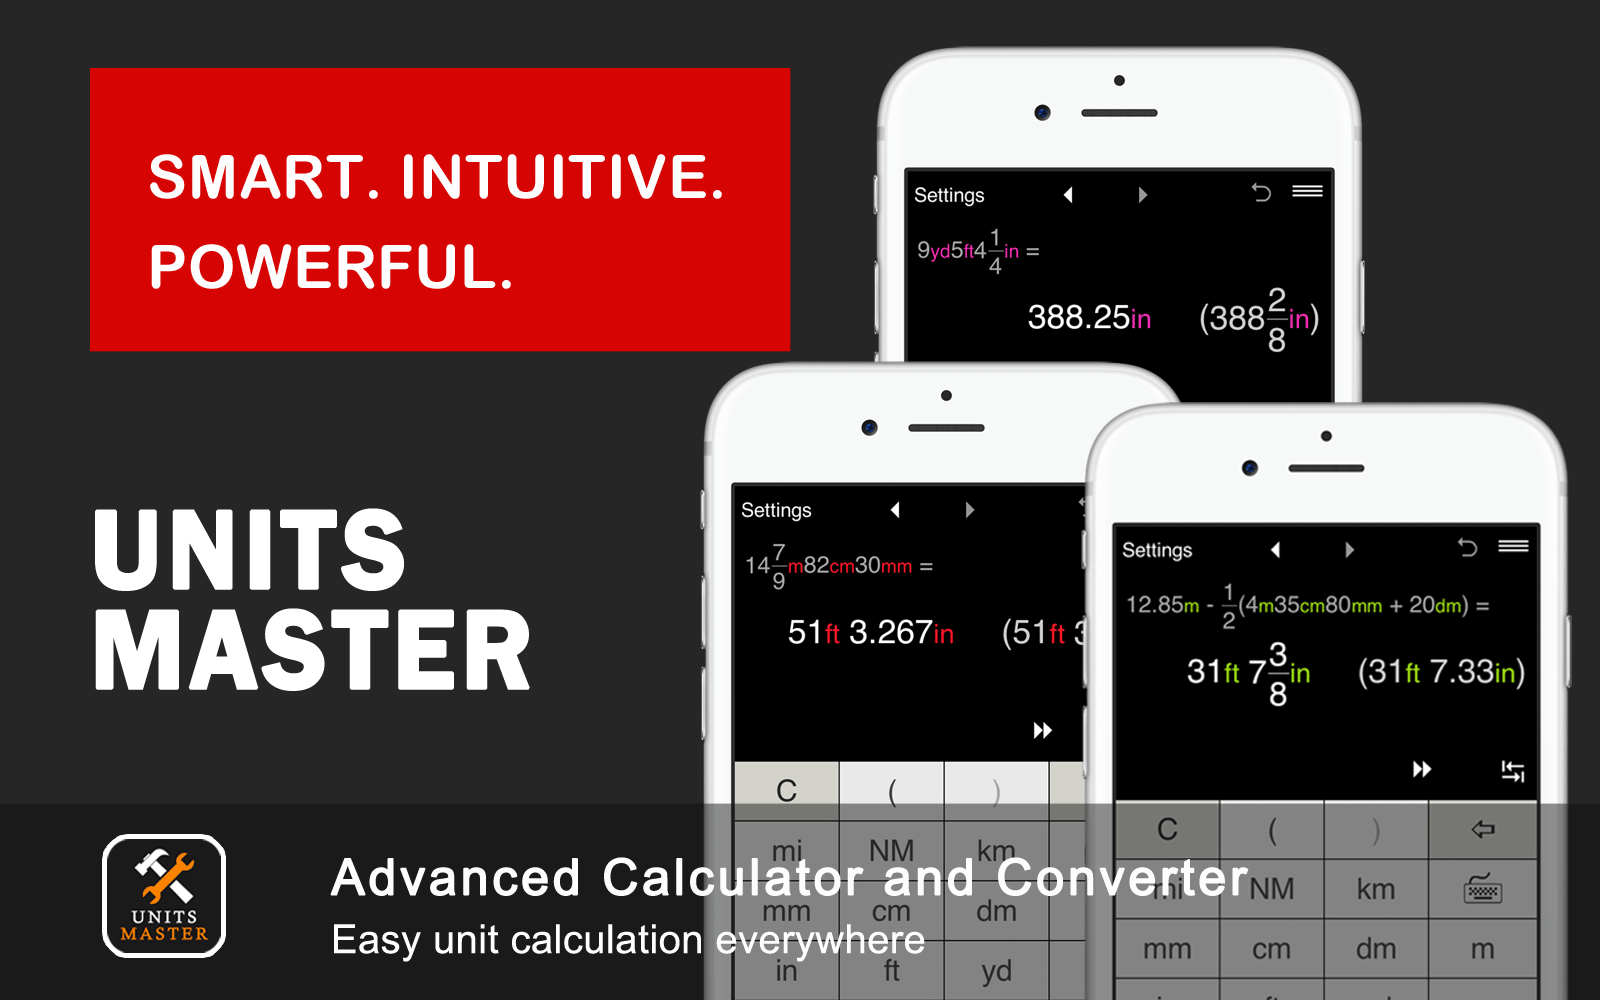 Professional Unit Converter and Calculator